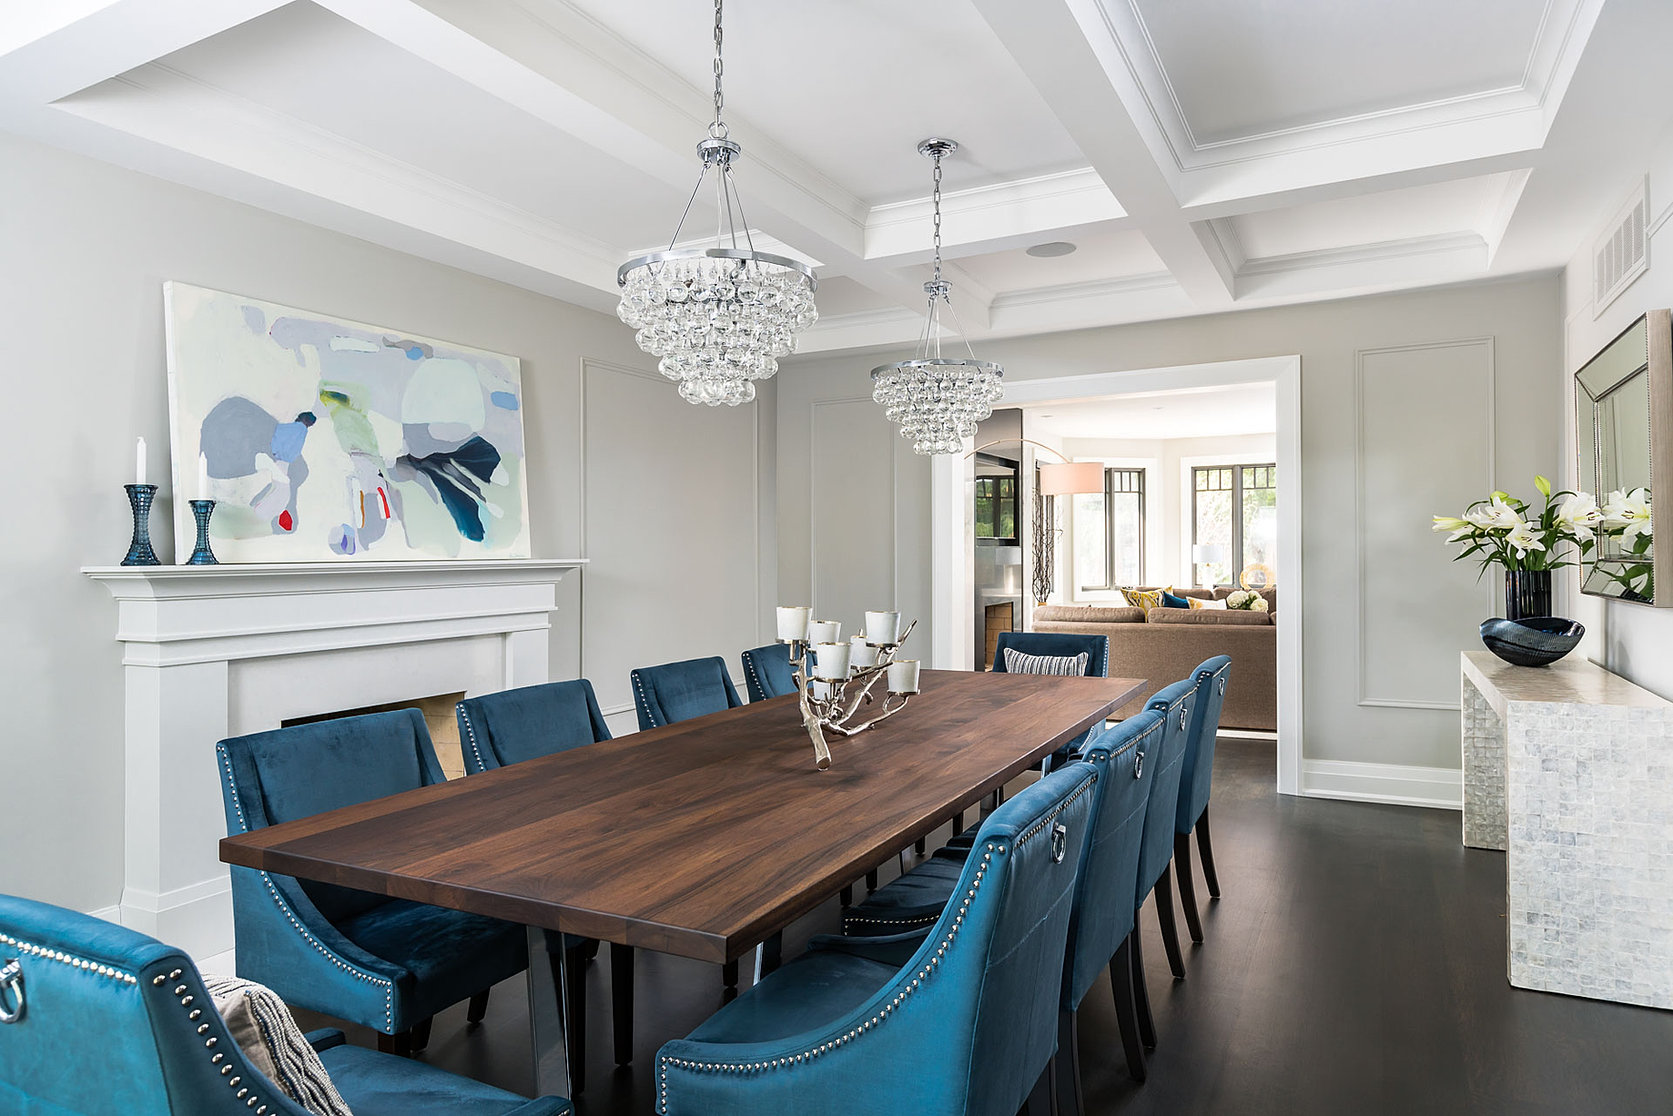 FRAHM INTERIORS Interior Design Firm Burlington